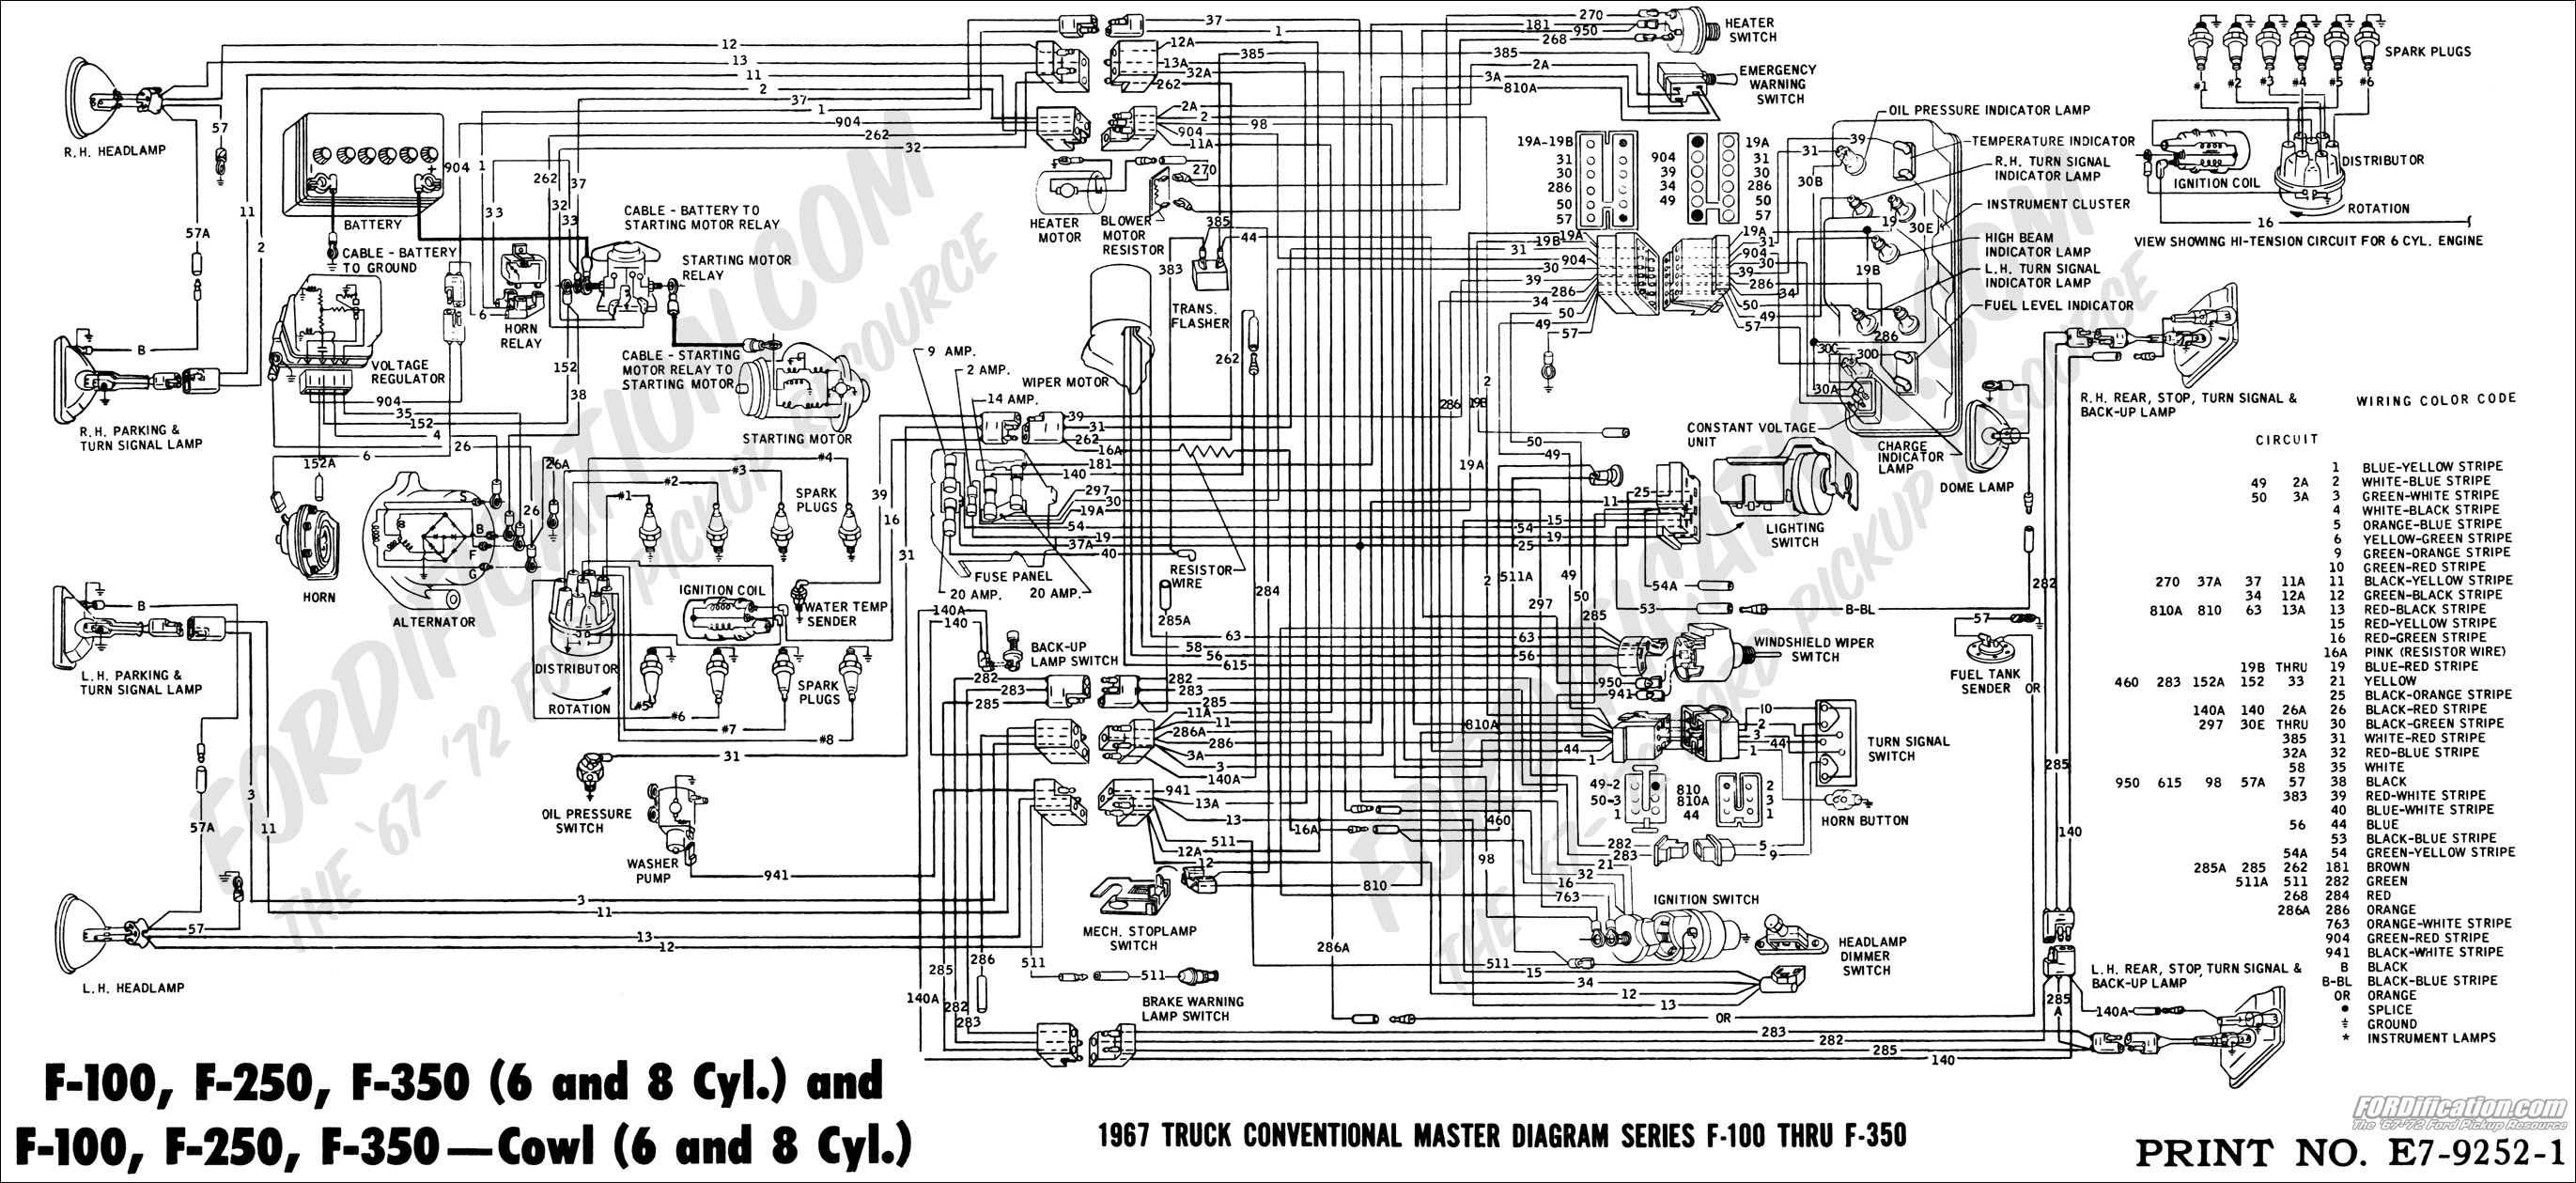 1999 ford e150 fuse diagram Images Gallery